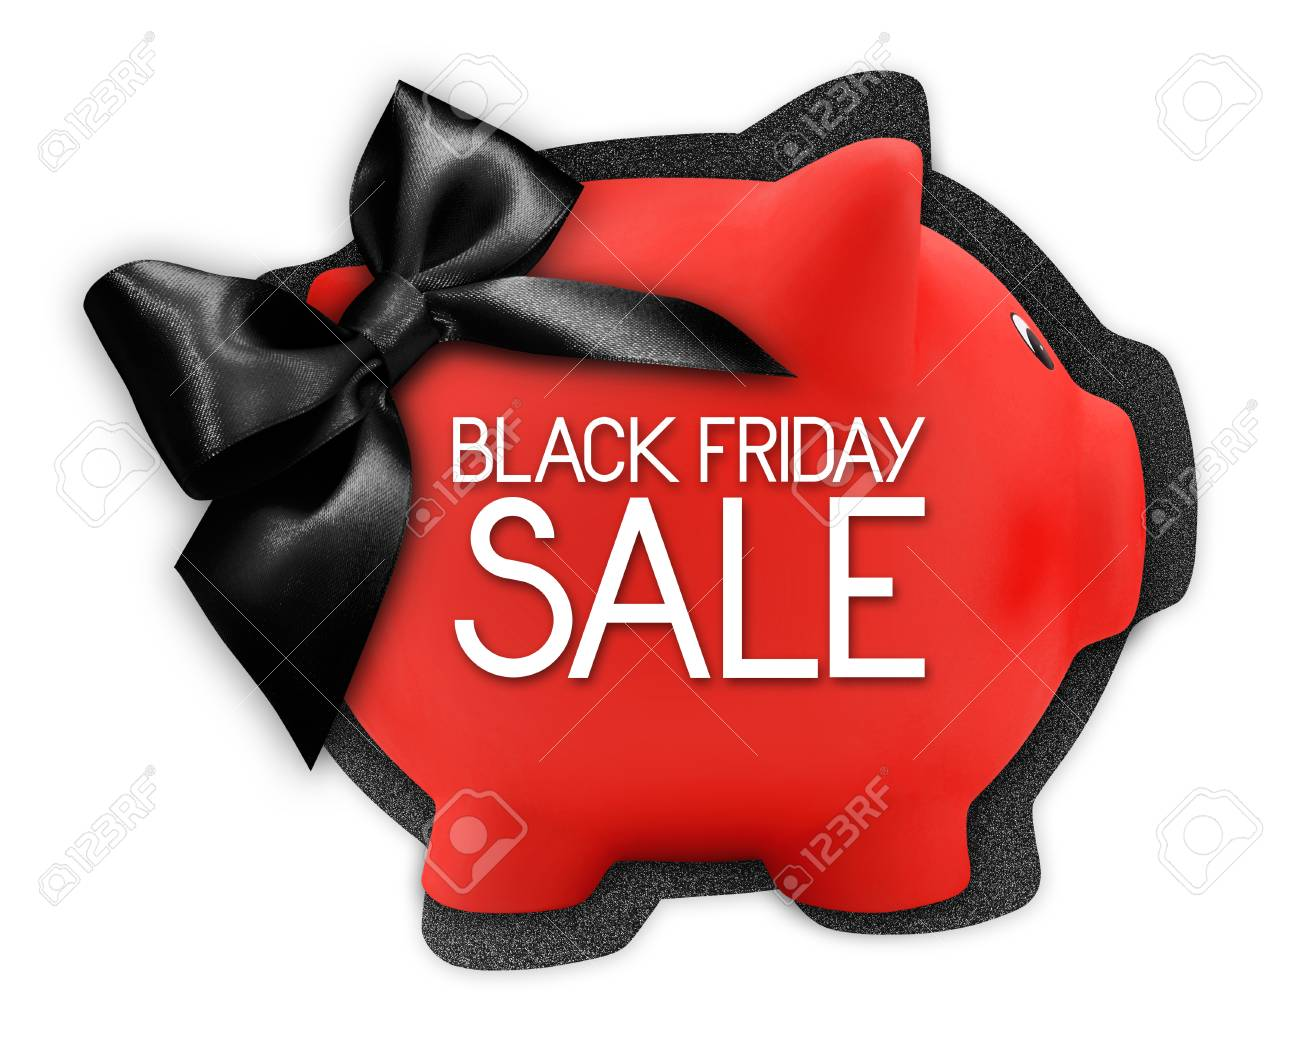 Black Friday Sale Text Write On Gift Card Label In The Shape Stock